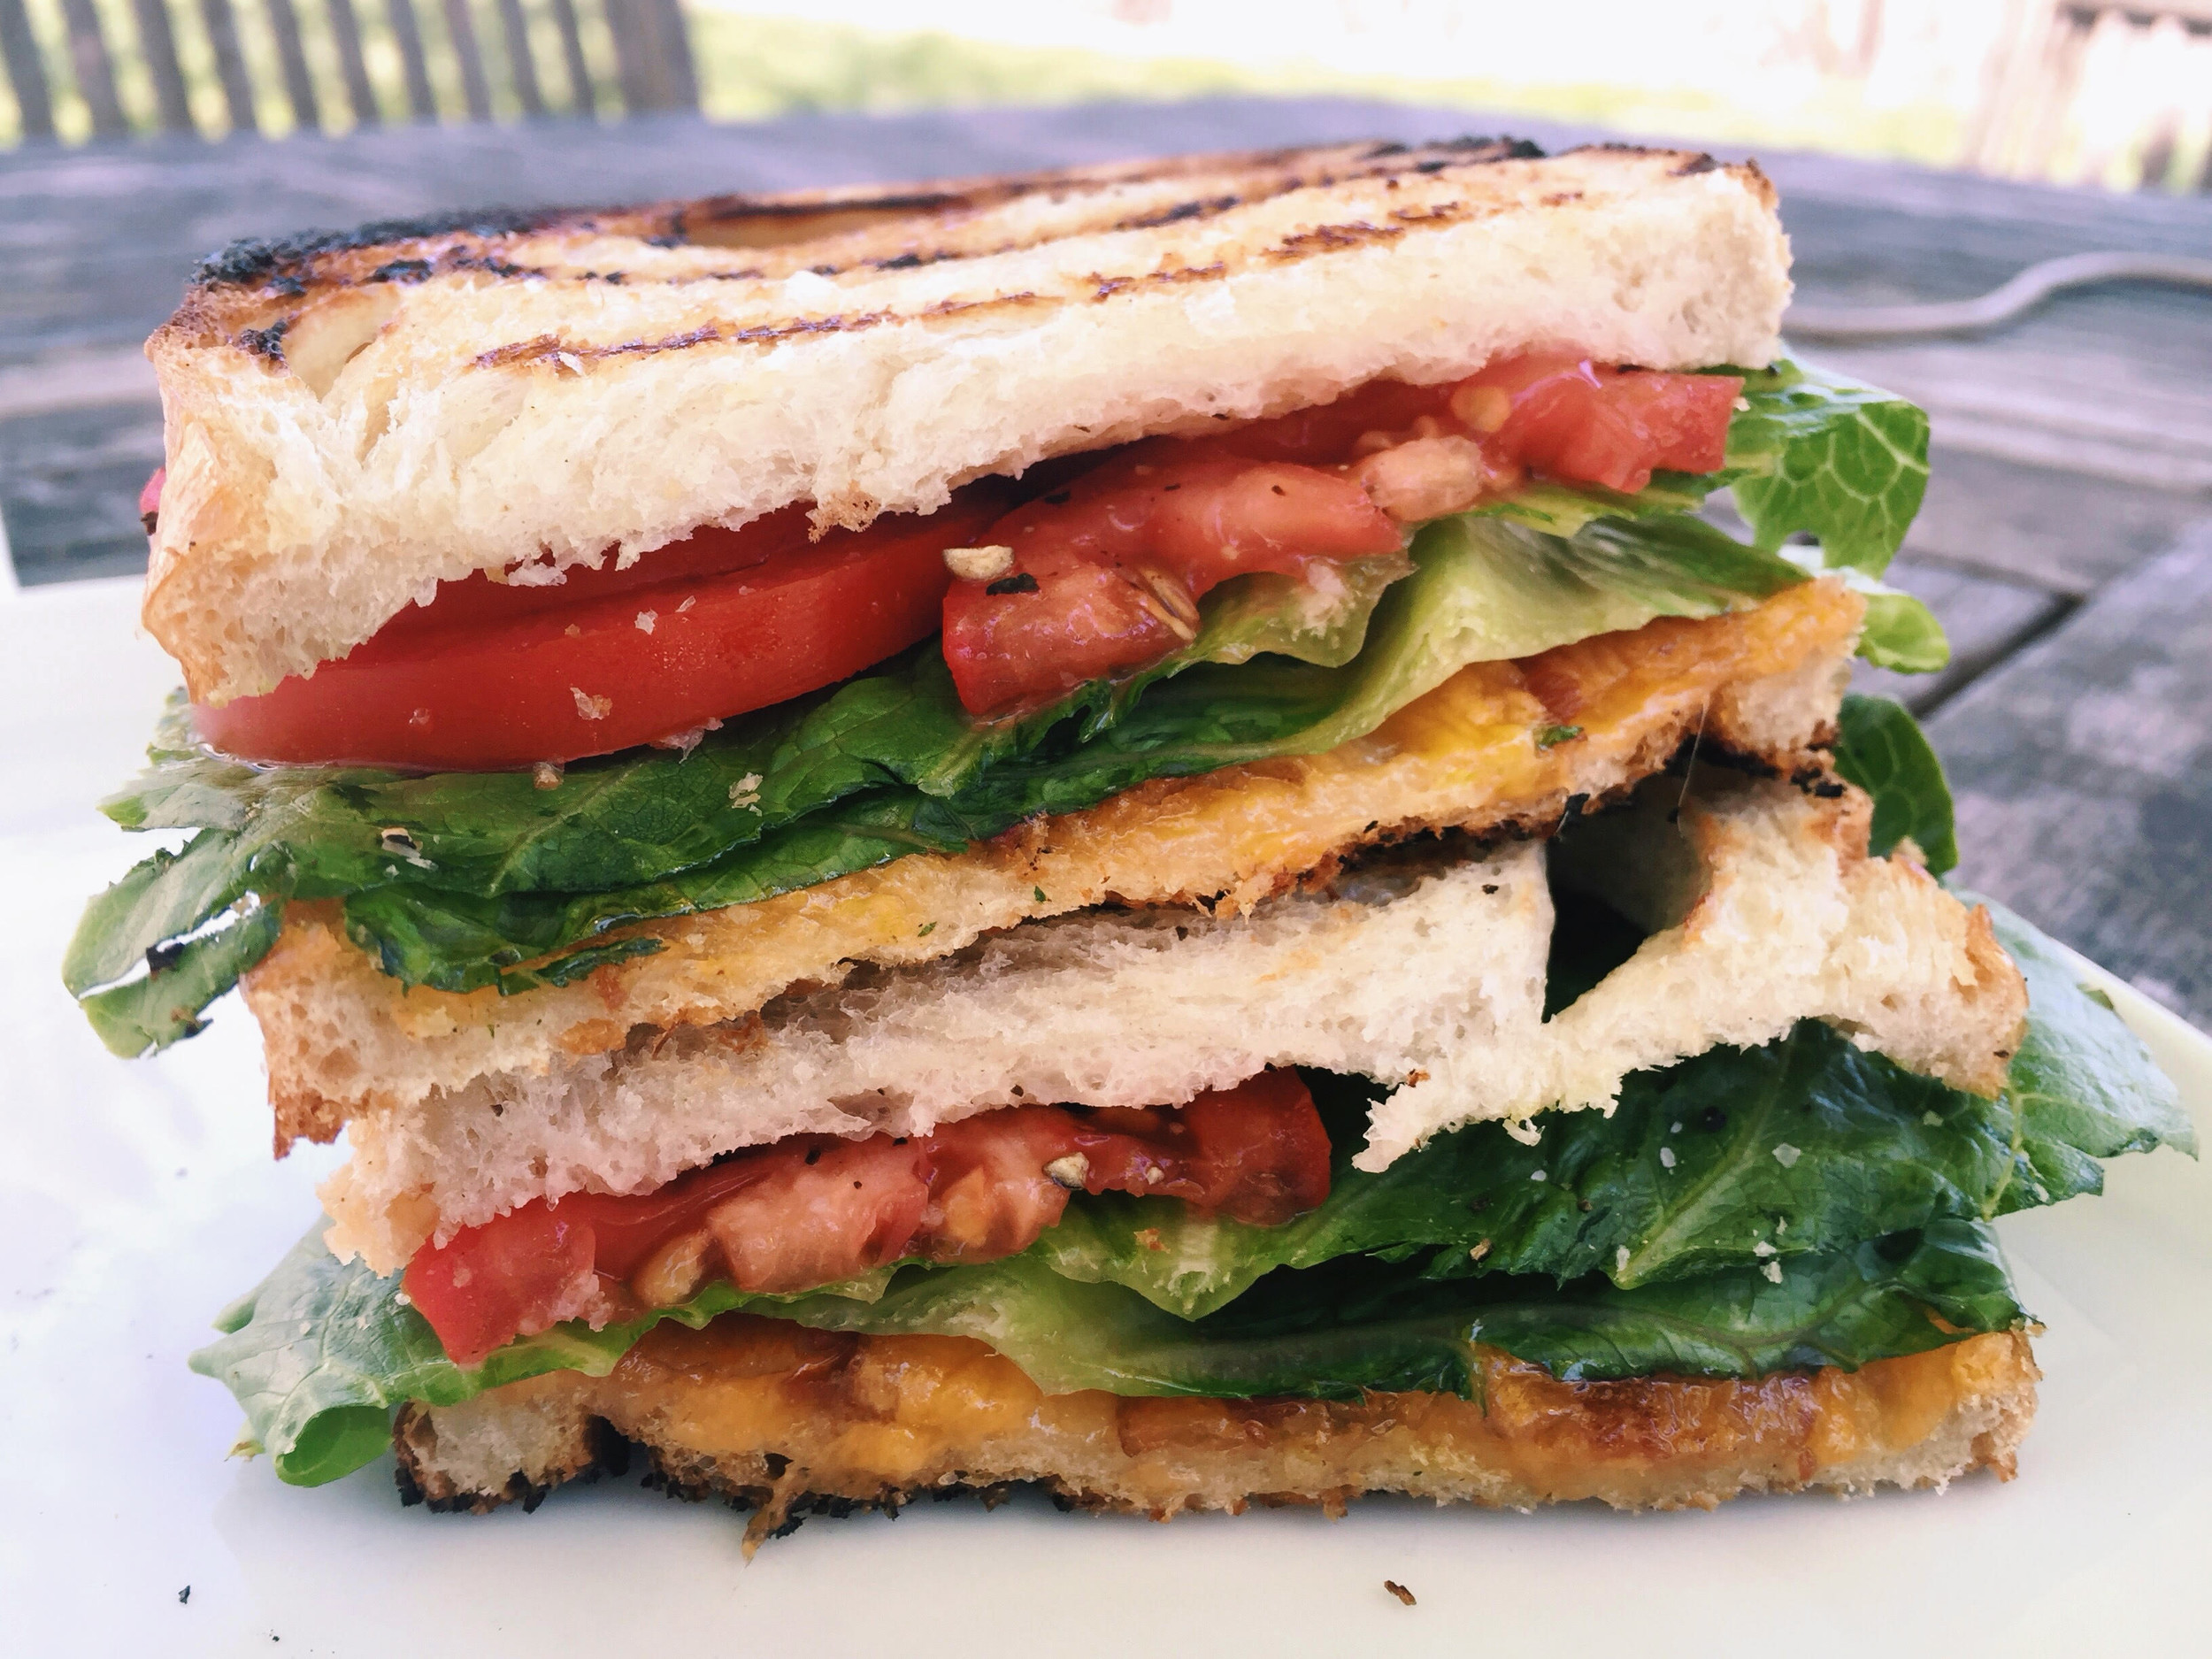 ... sandwiches, the BLT and the grilled cheese, come together as one